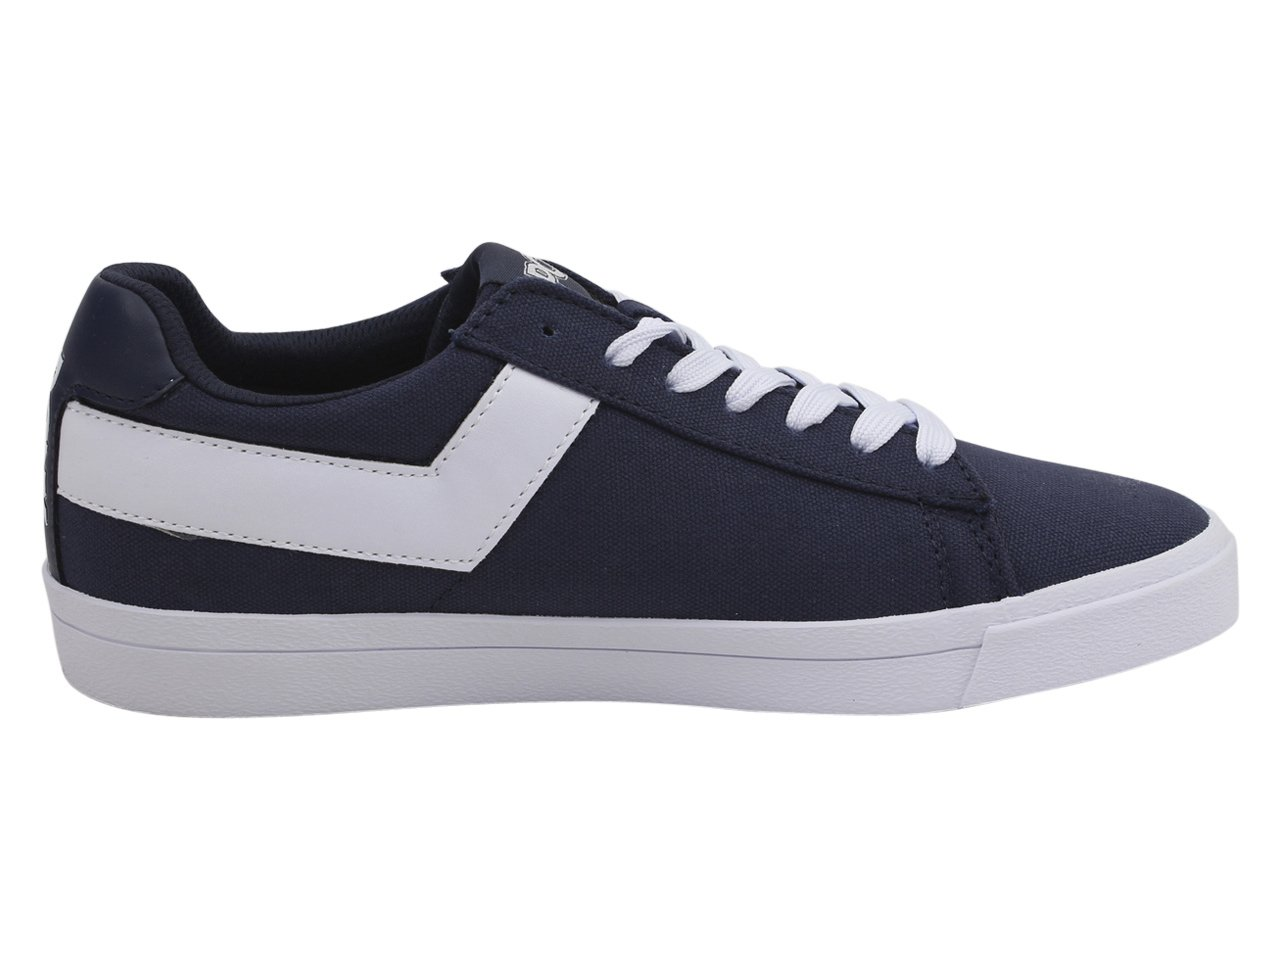 Pony Women's Top-Star-Lo-Core-Canvas Sneakers Shoes B07BCP1D2W 7.5 B(M) US|Navy/White